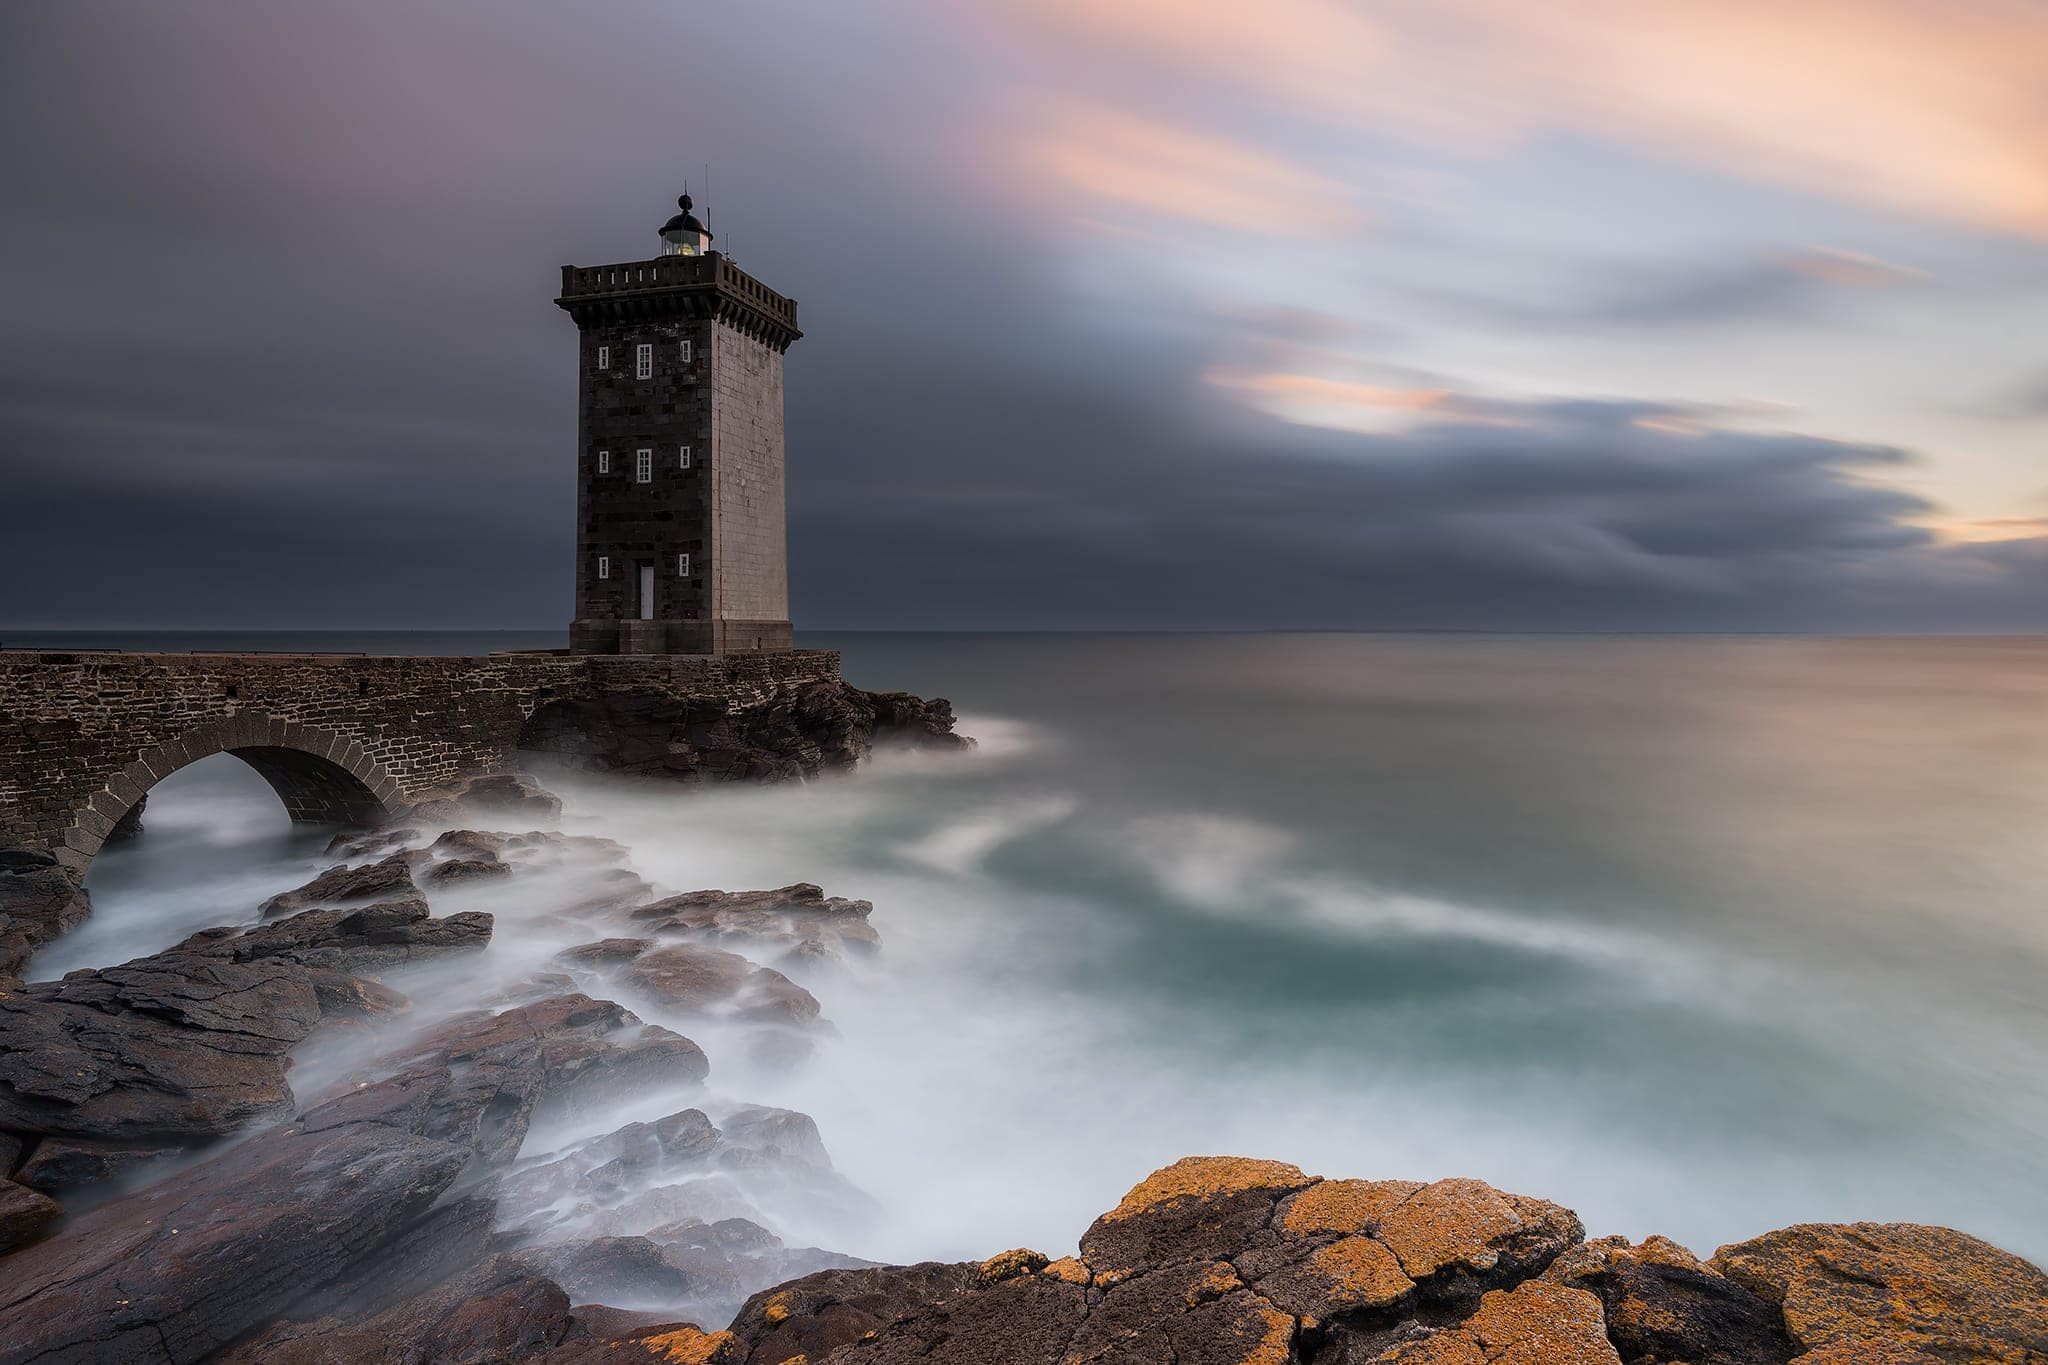 Francesco Gola Seascape Photography Long Exposure Storm France Brittany Bretagne Kermorvan Lighthouse